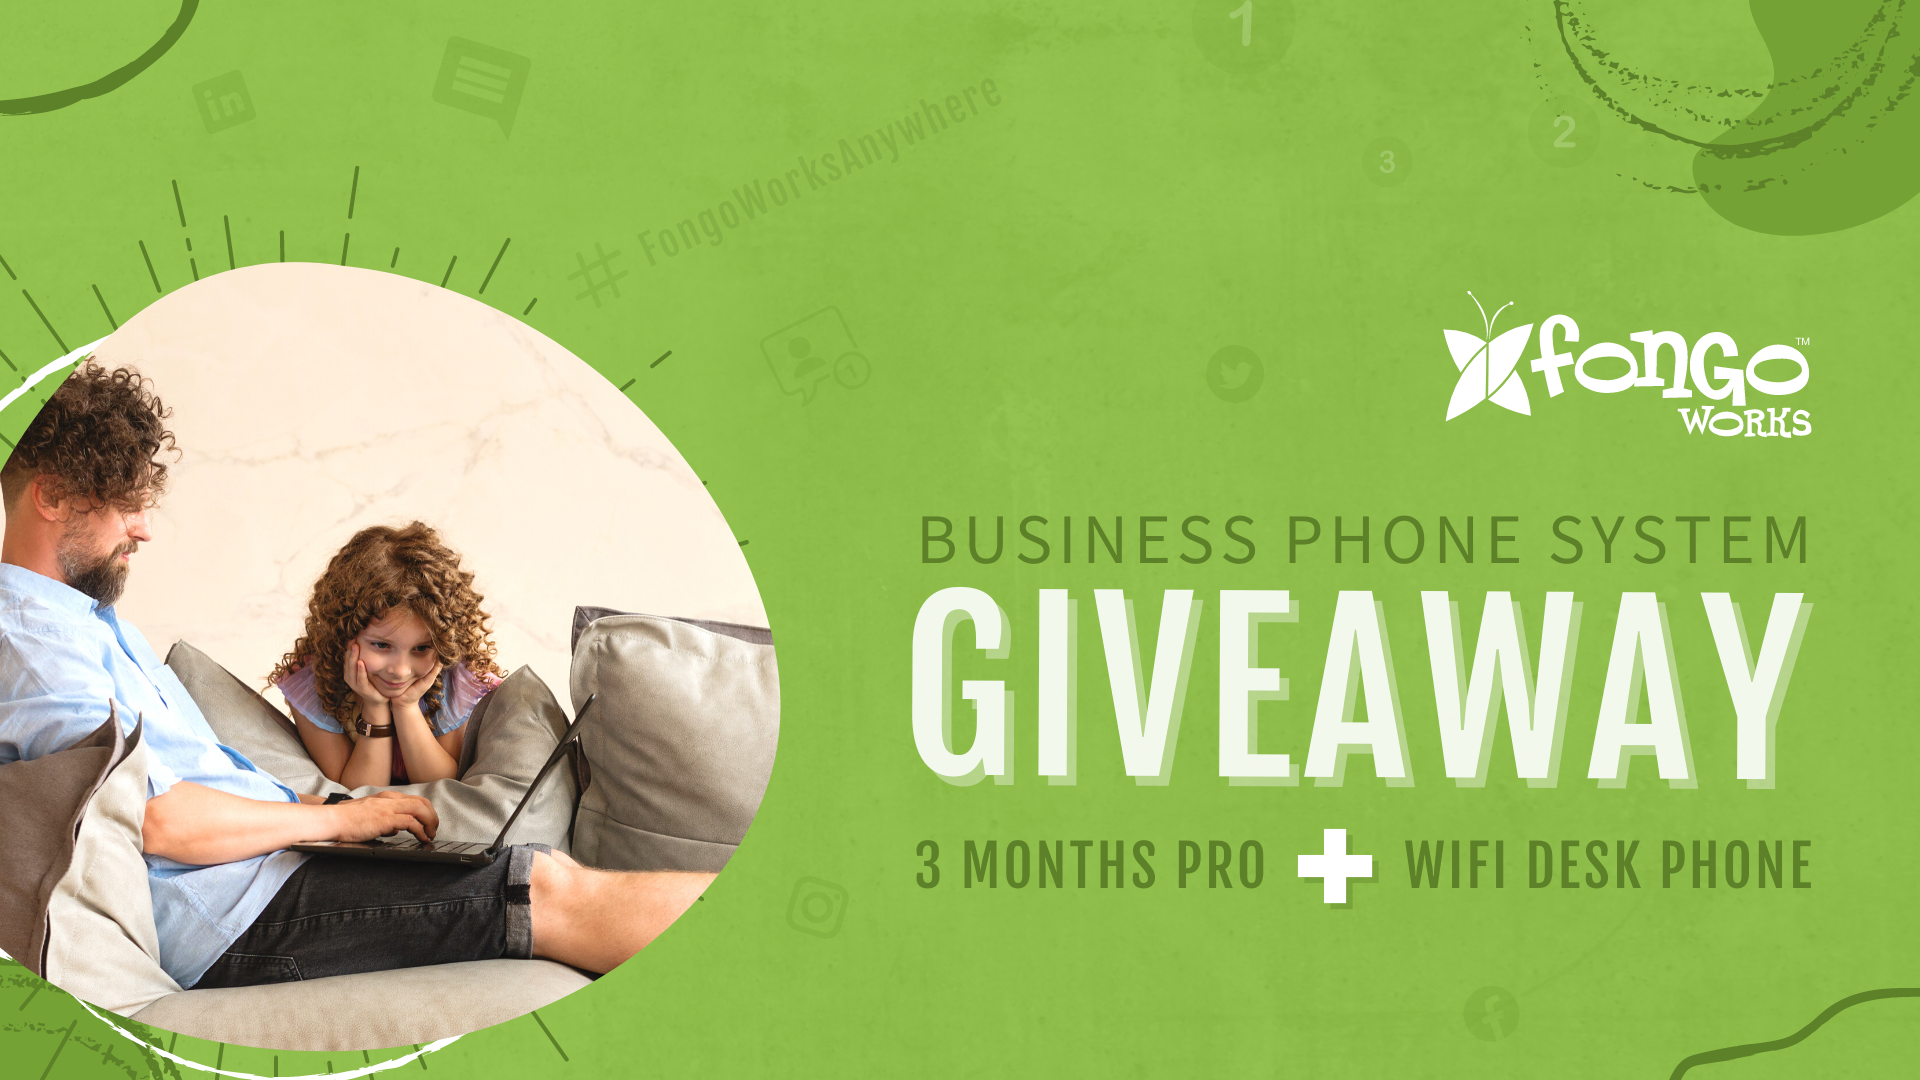 Fongo Works Campaign Giveaway